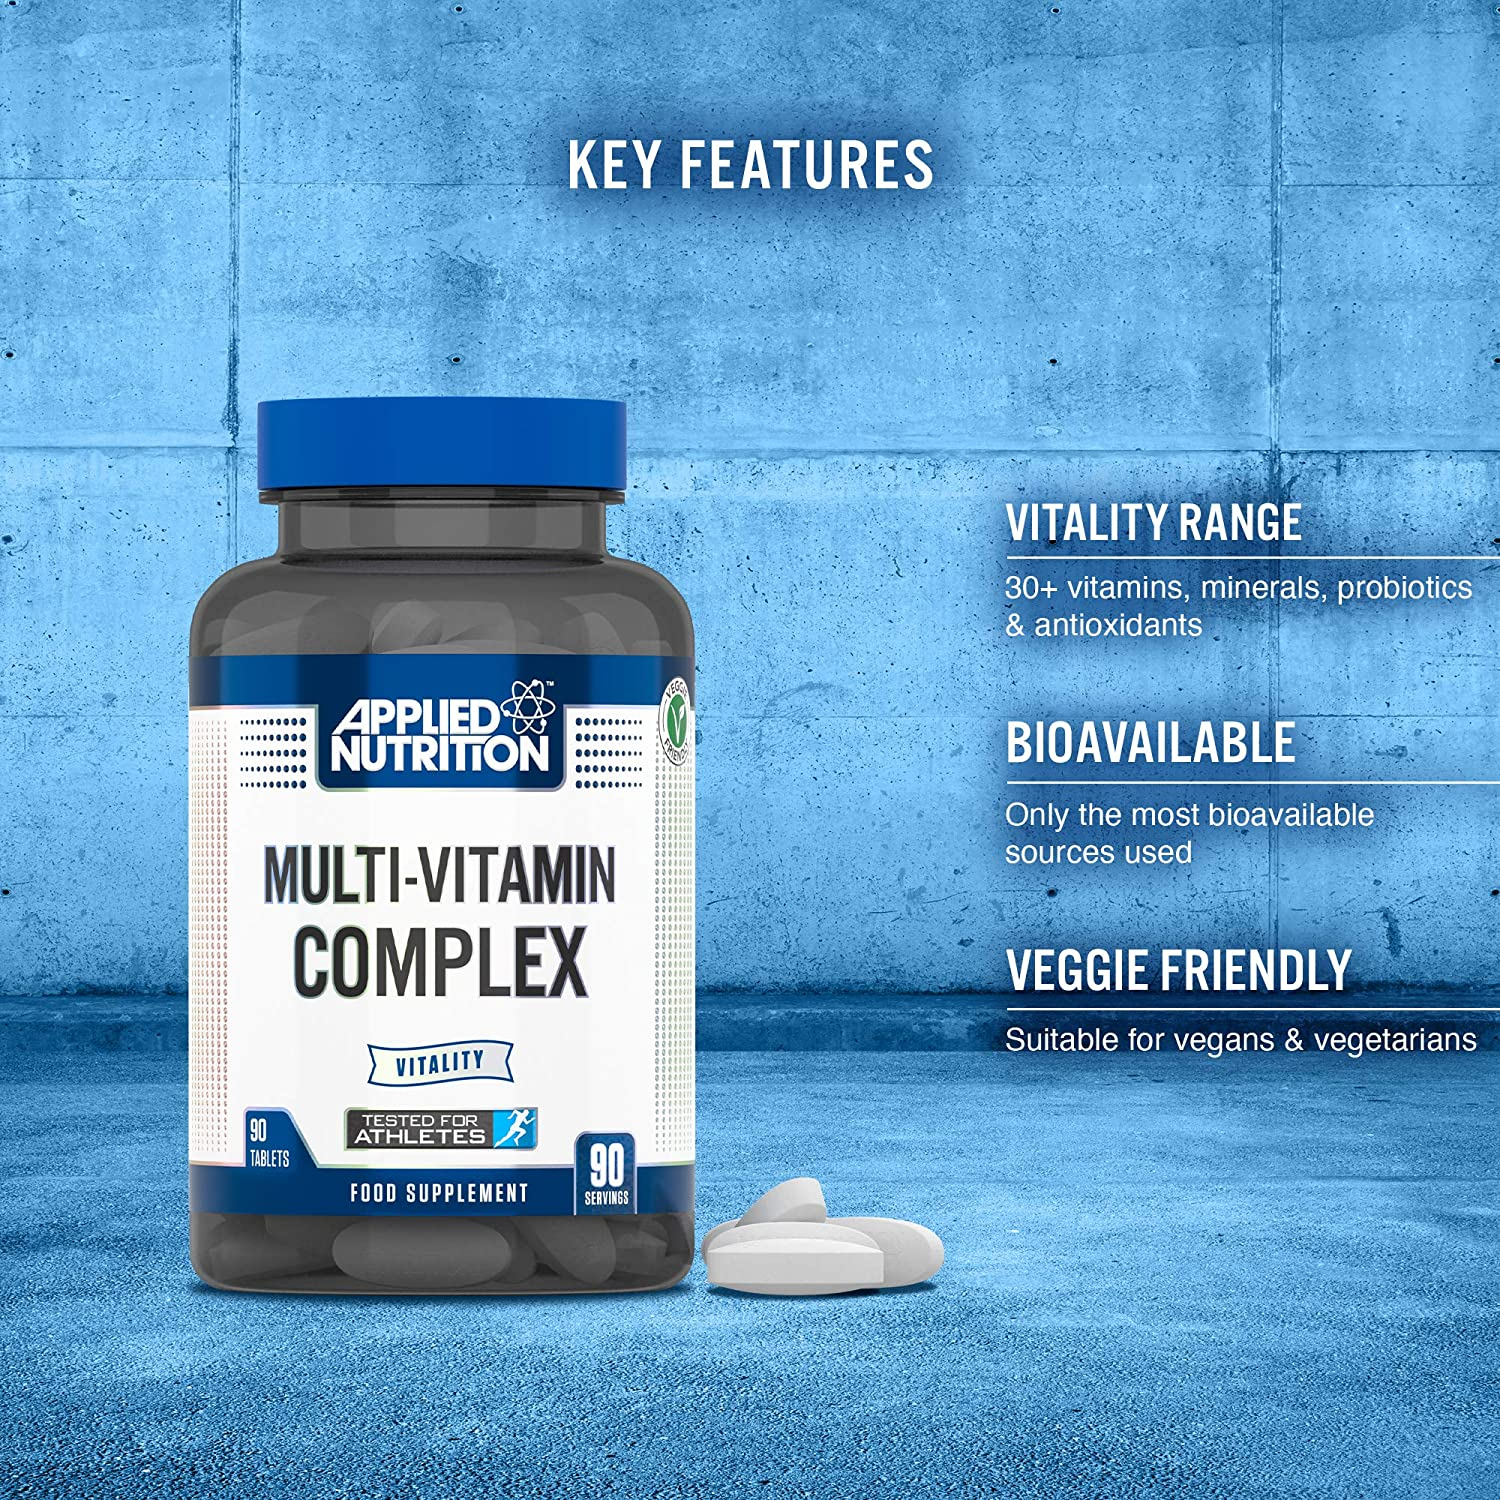 Applied Nutrition Multivitamin Complex 90 Tablets for Men & Women with 30 + Key Vits, Minerals, Probiotics & Antioxidants Including Calcium, Magnesium, Zinc and Vitamin C | Suitable for Vegans: Amazon.co.uk: Health